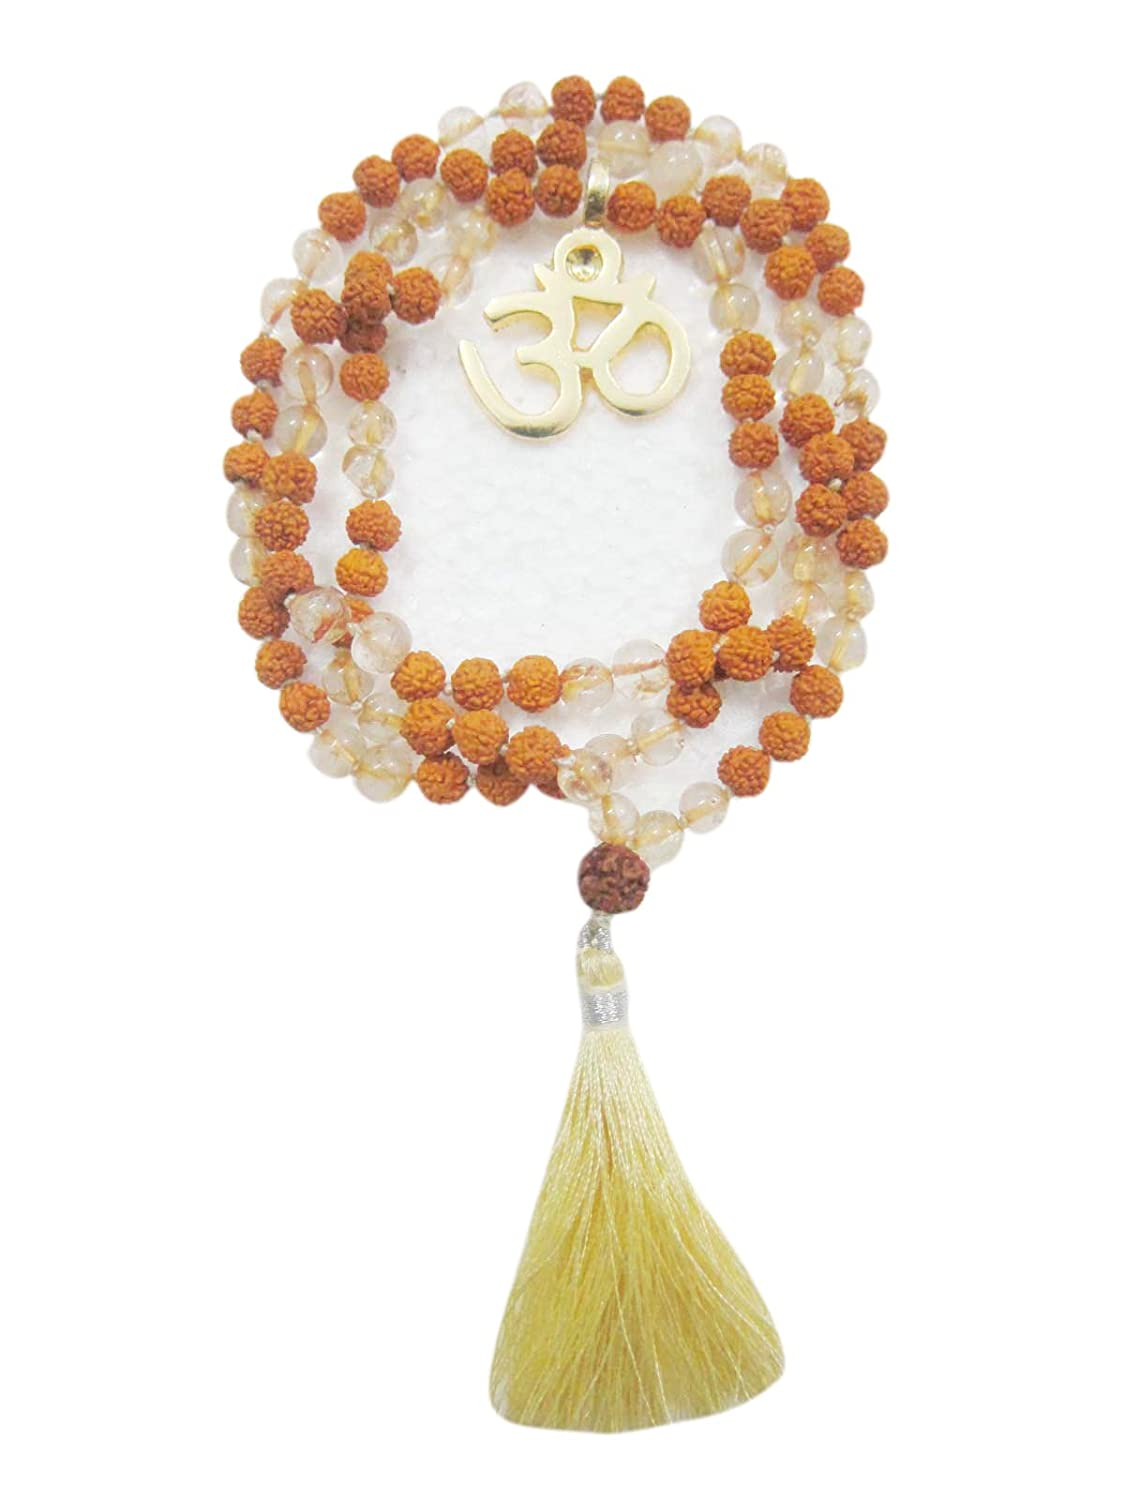 Amazon.com: I am Light, Citrine Rudraksha Om Mala Beads ...